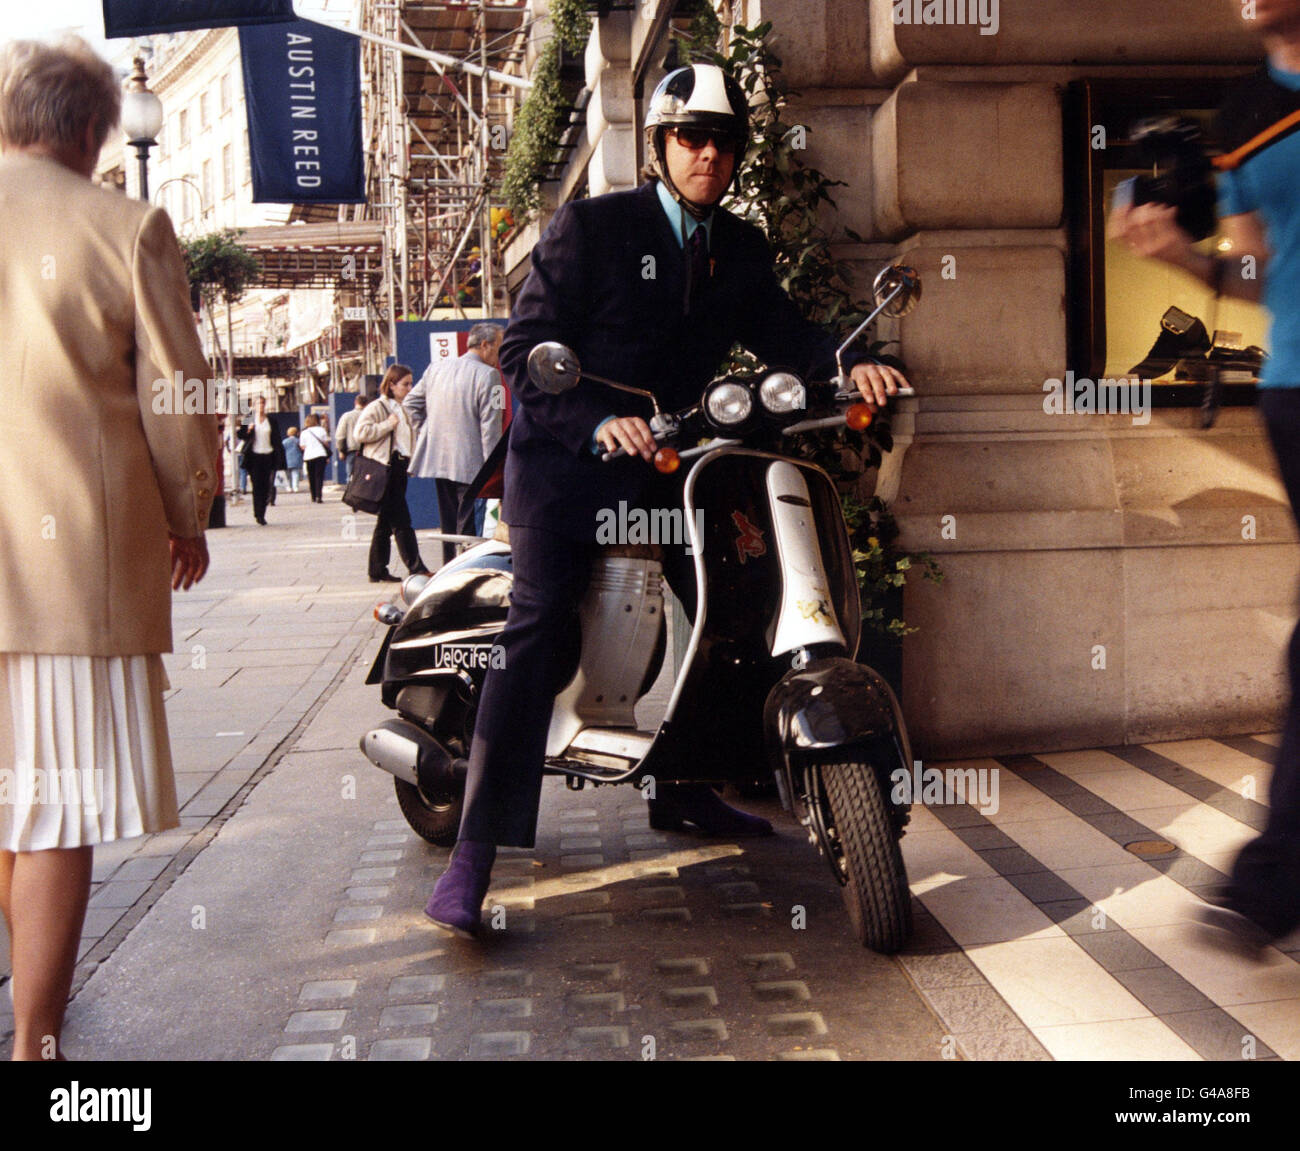 Pa News Photo 3 10 97 Tv Presenter Jonathan Ross Leaves The Stock Photo Alamy